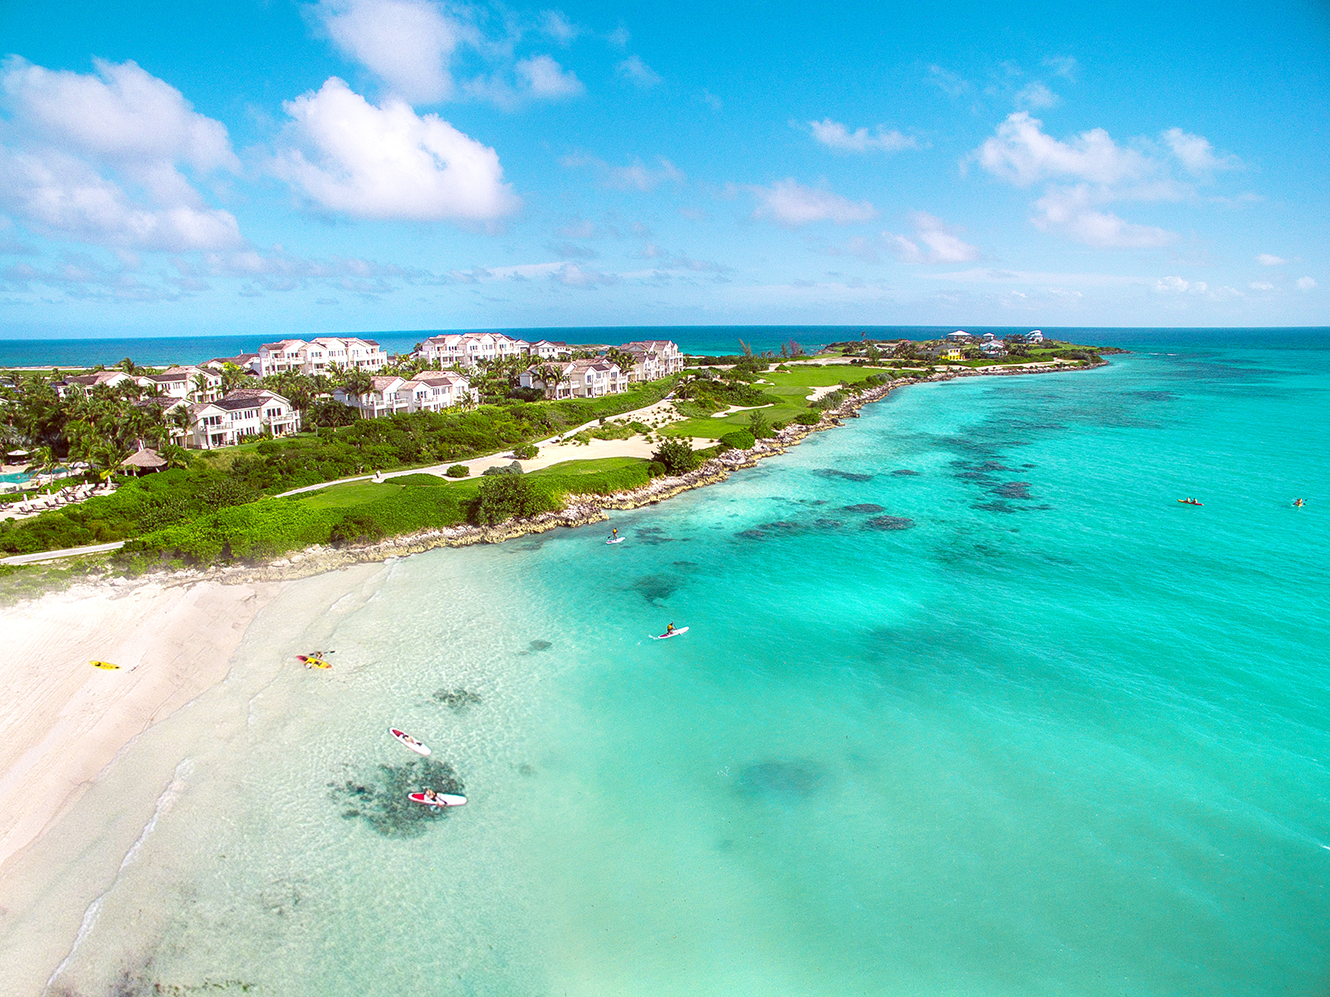 Grand Isle Resort & Spa, Great Exuma, Bahamas